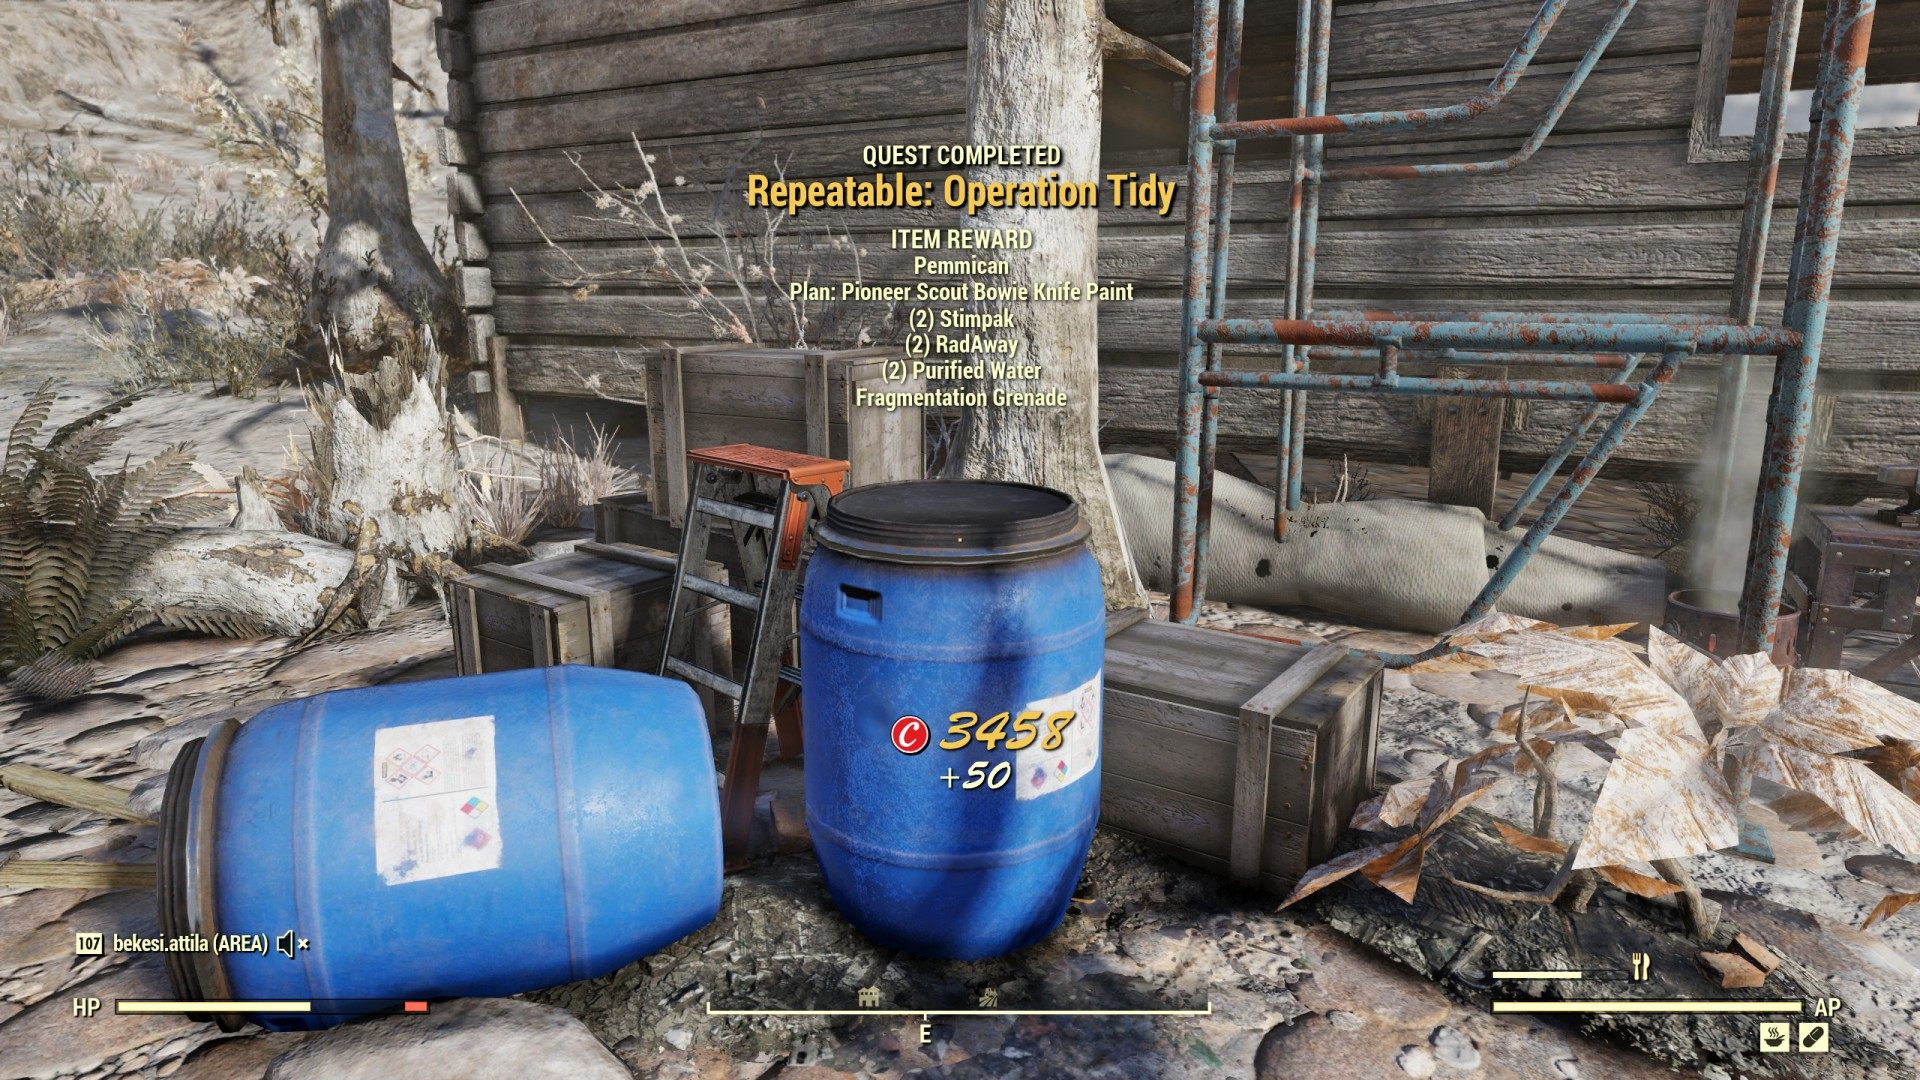 Repeatable: Operation Tidy, Fallout 76 Quest